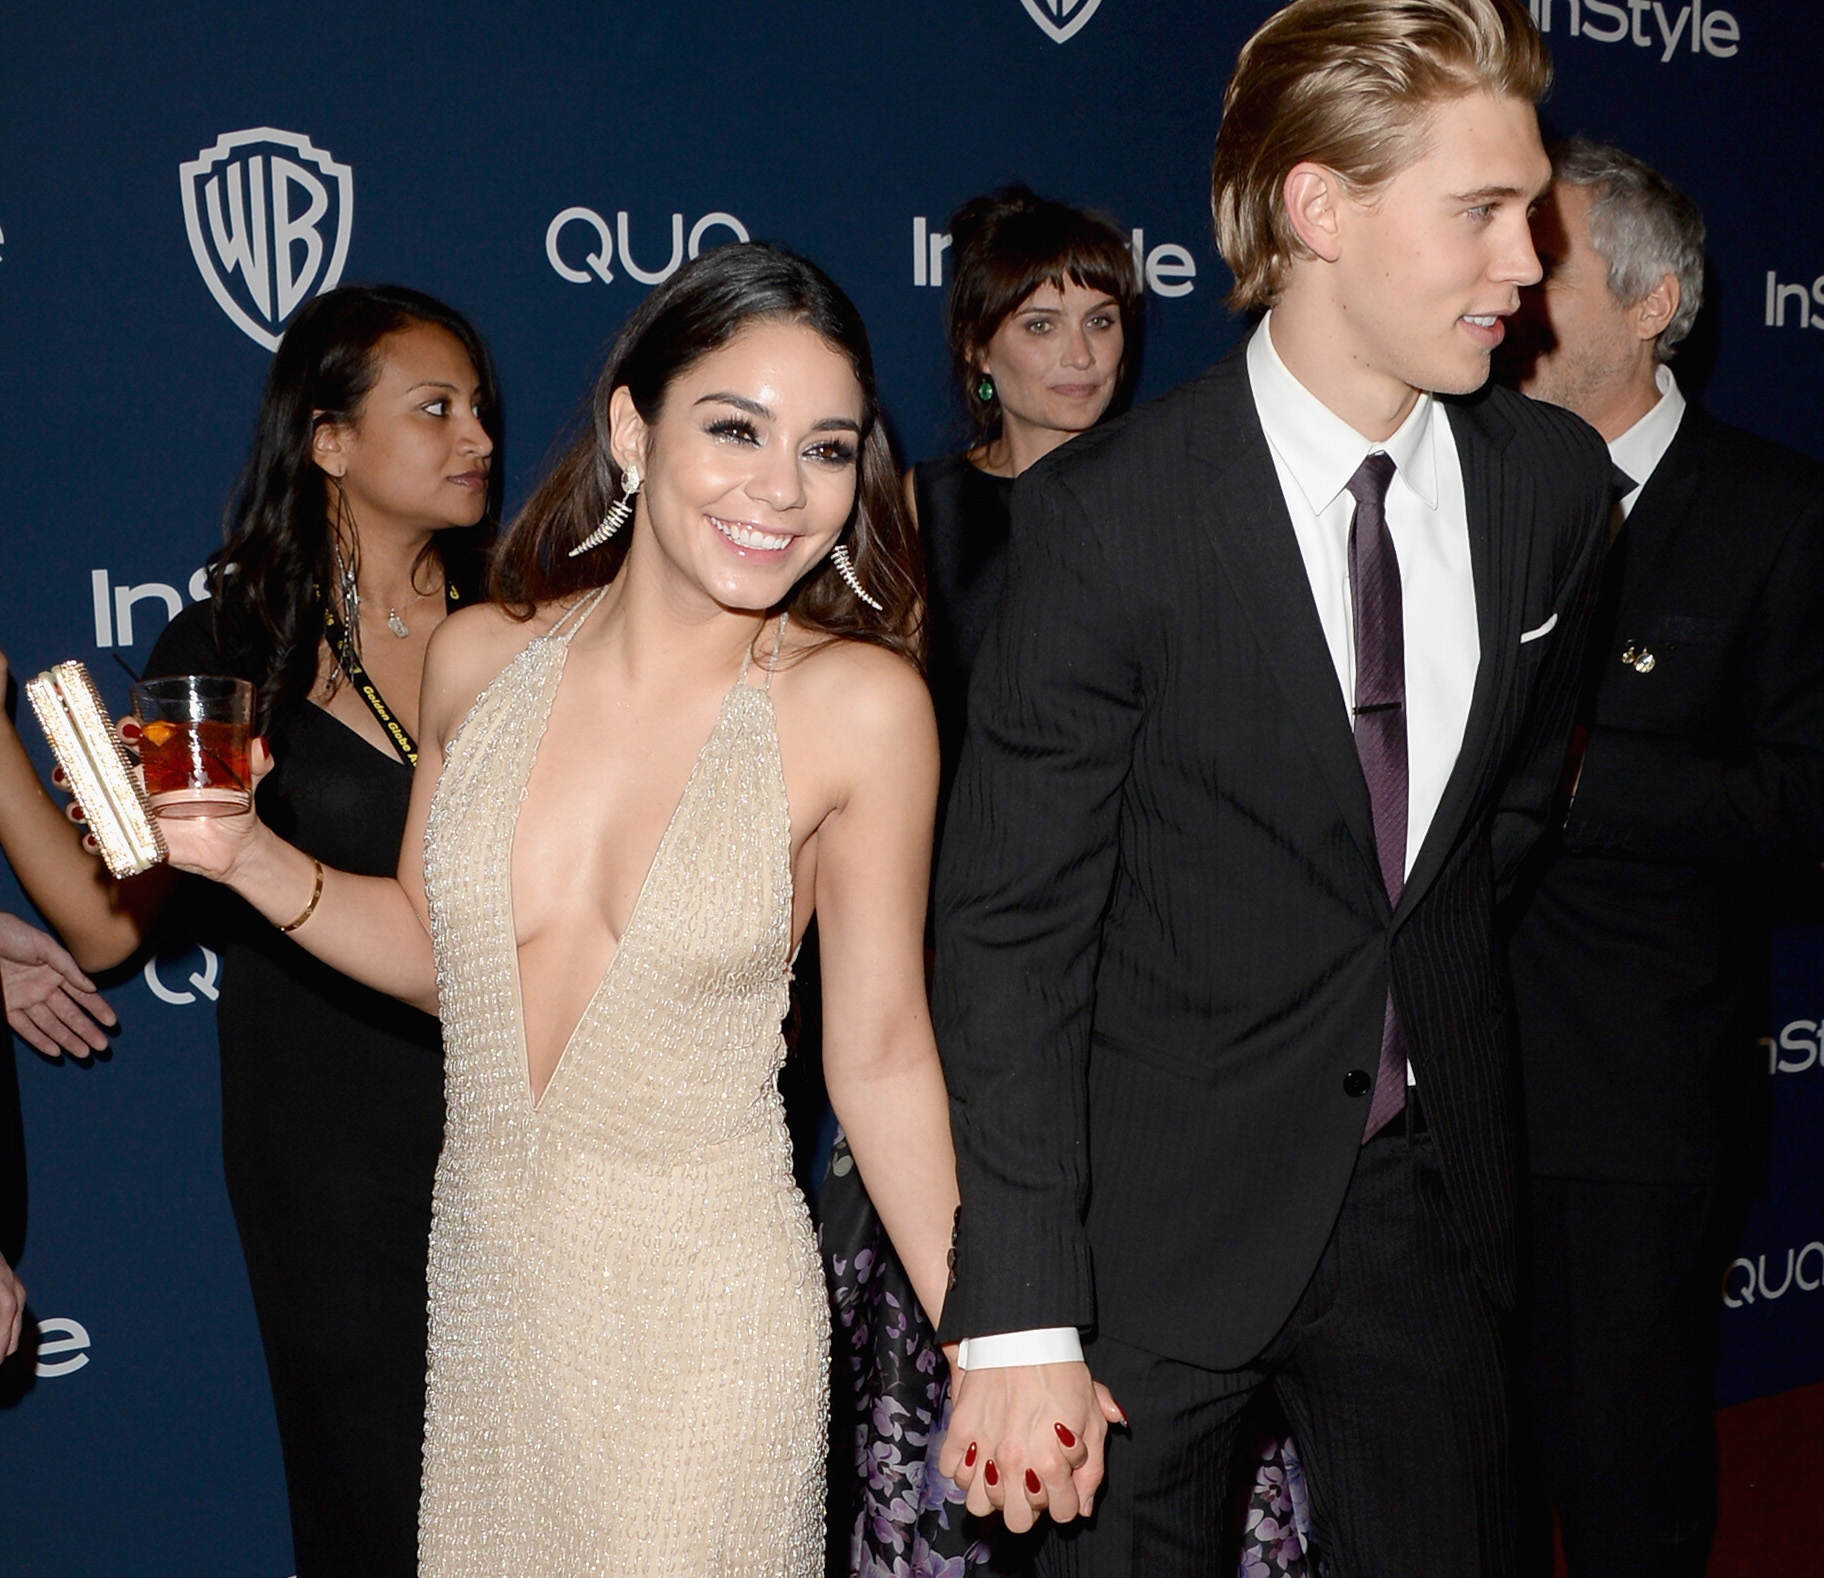 vanessa hudgens austin butler 02 getty rdy Vanessa Hudgens Fined For Public Display Of Affection